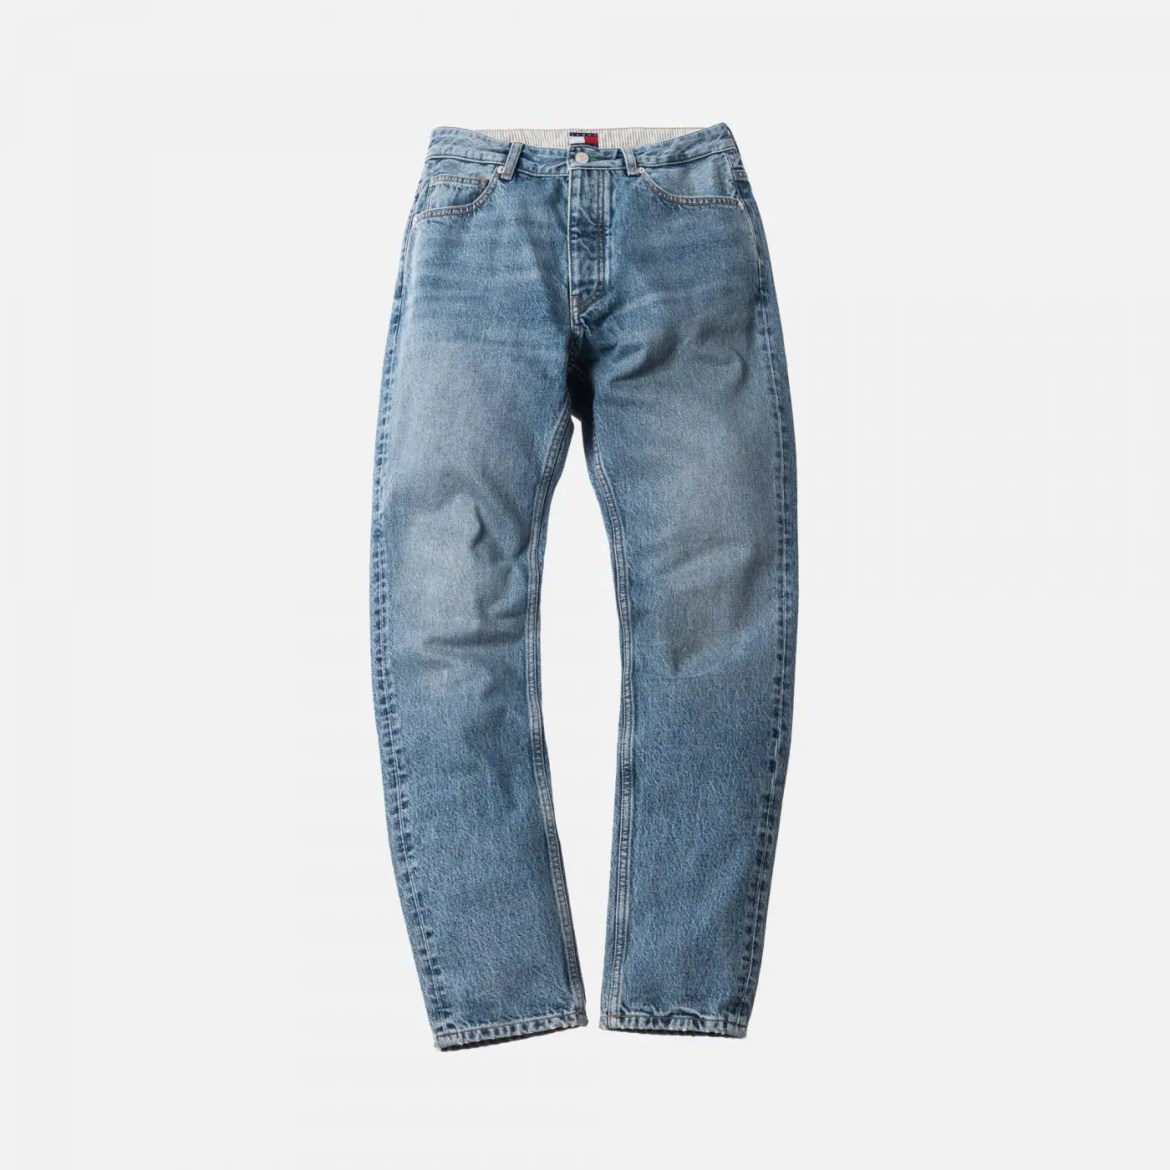 KITH X TOMMY HILFIGER 5 POCKET DENIM PANTS